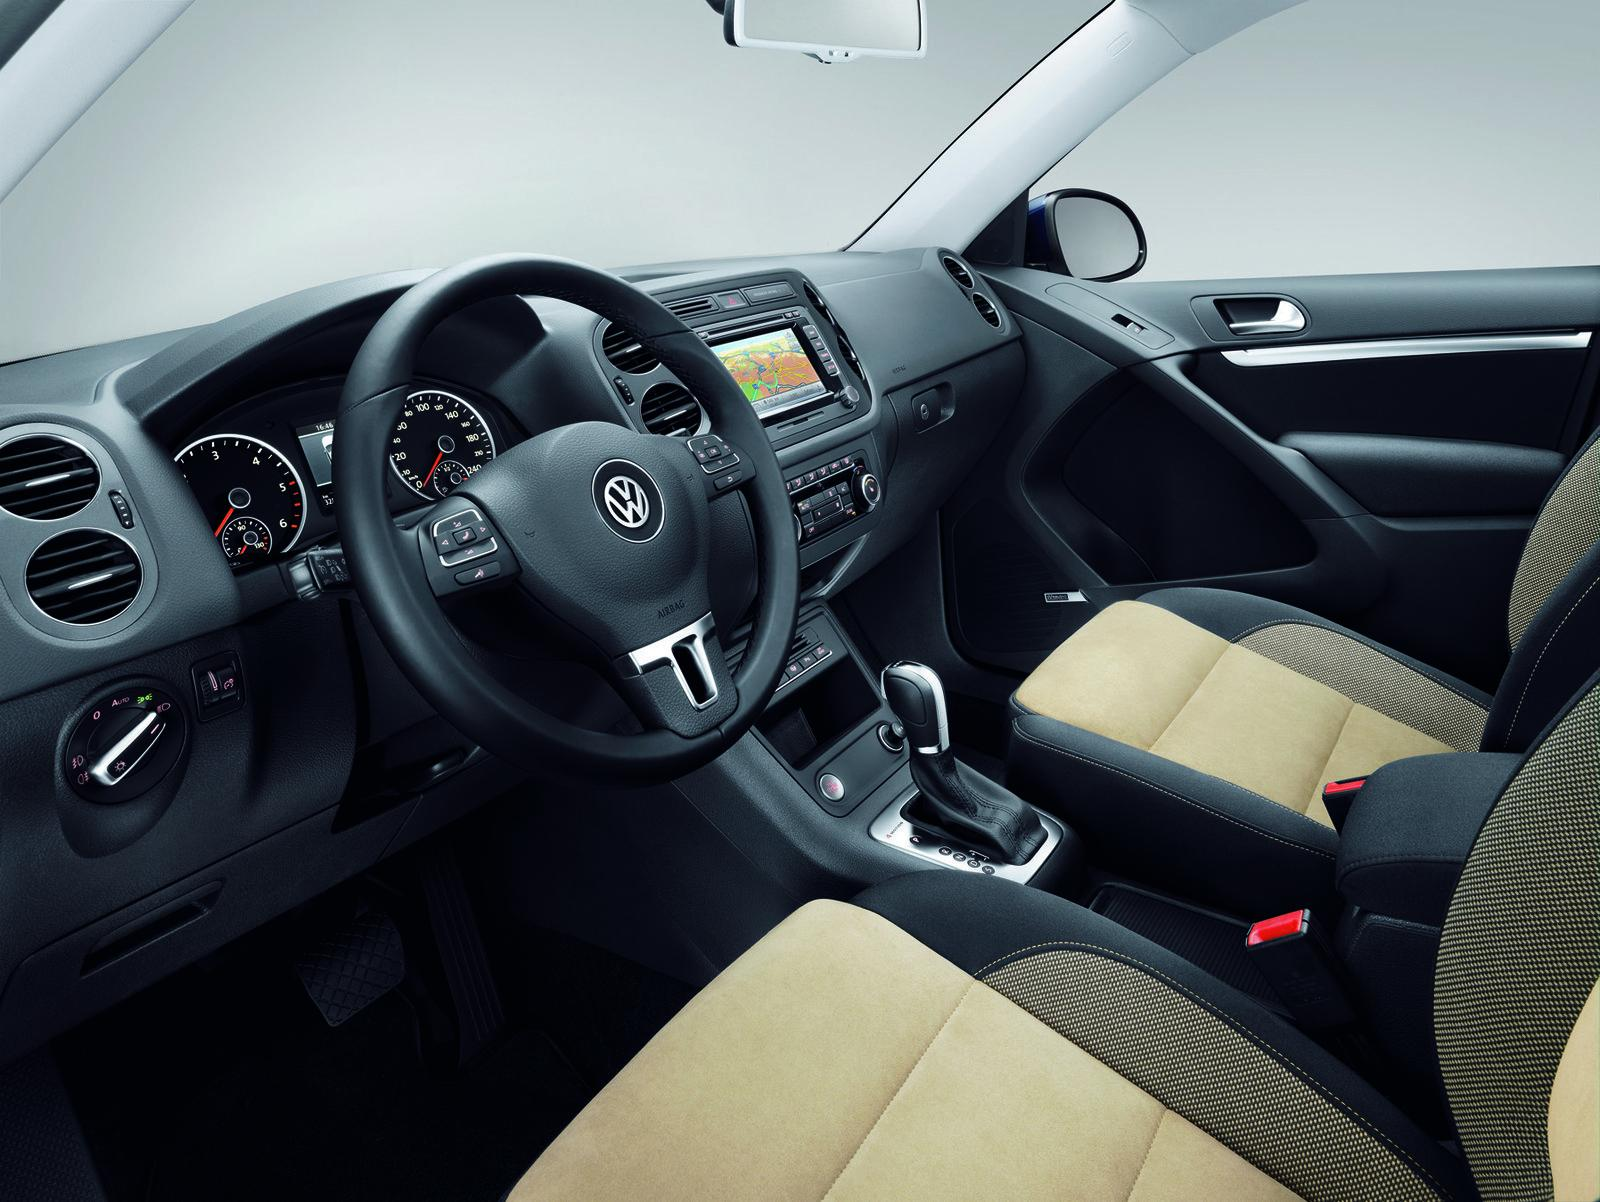 VW Passat and Tiguan 13 VW to Upgrade Passat and Tiguan in North America